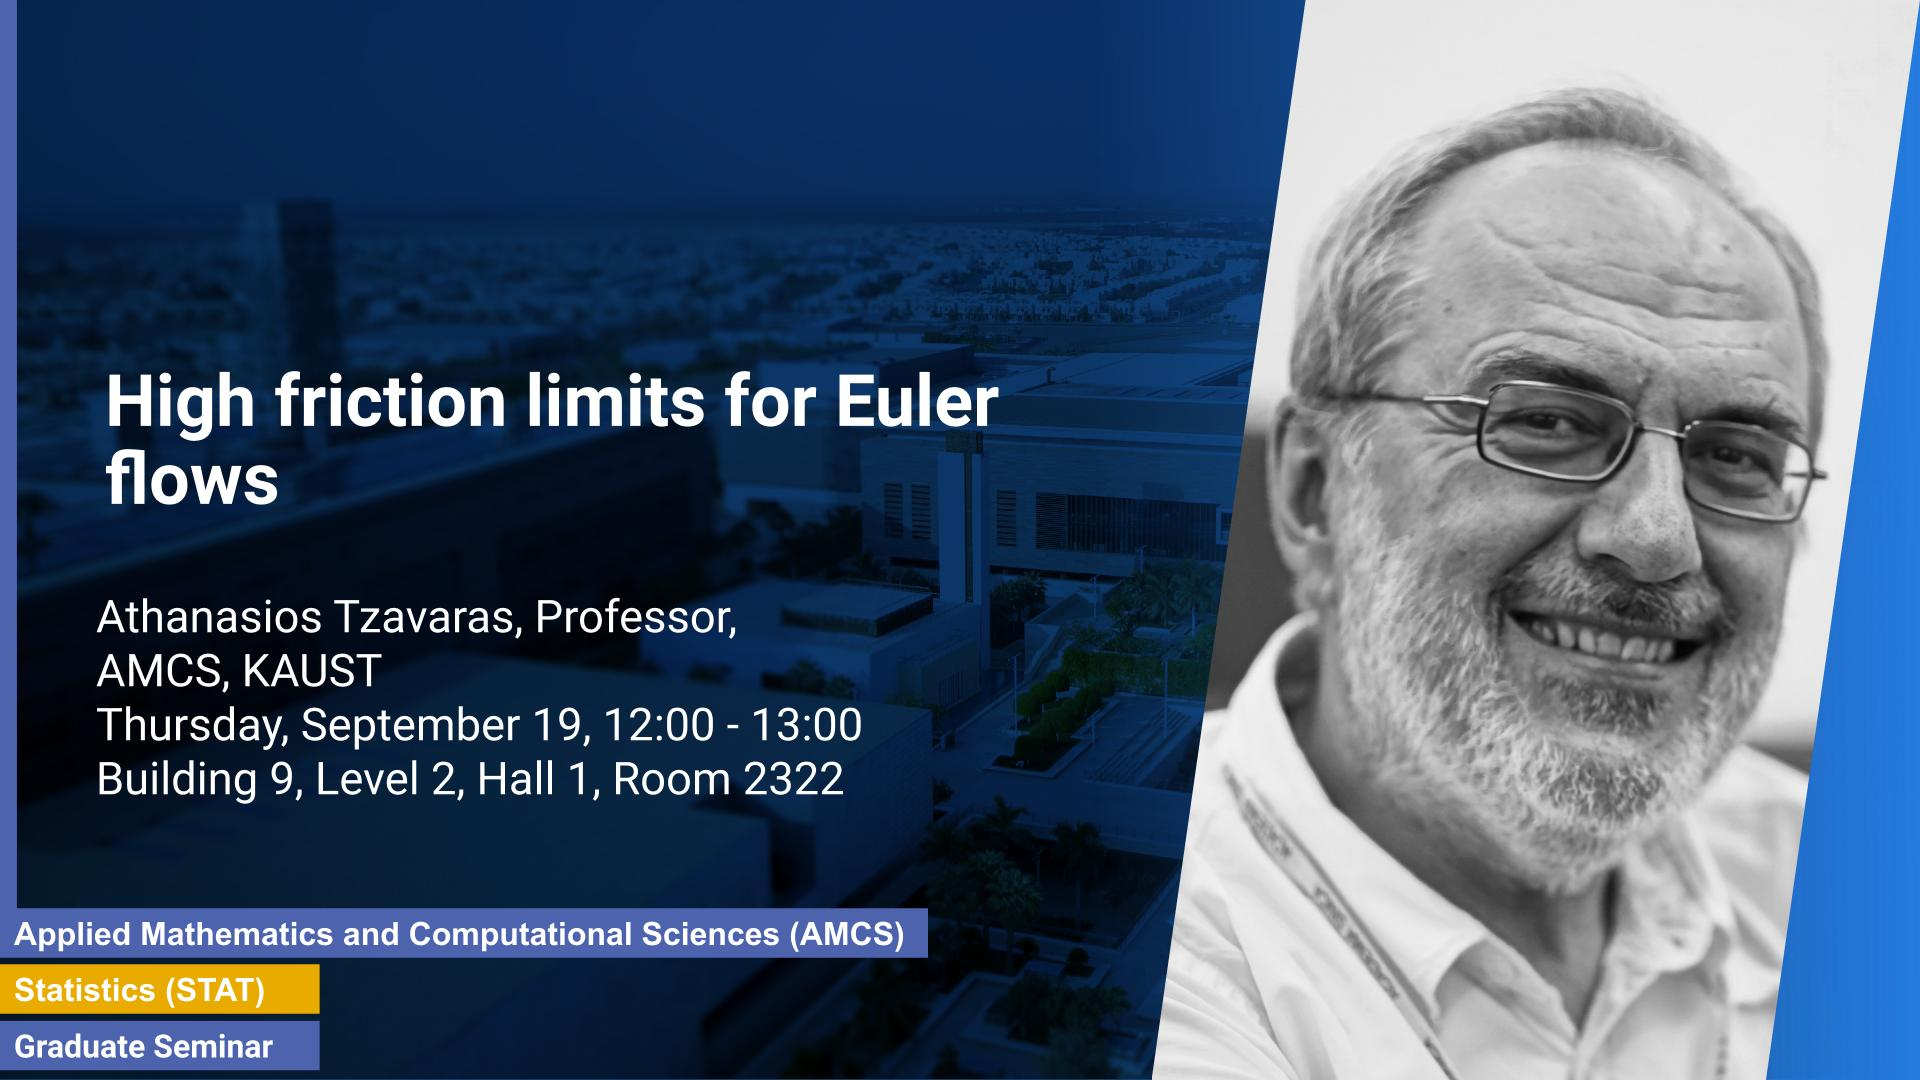 KAUST CEMSE AMCS Graduate Seminar Athanasios Tzavaras High friction limits for Euler flows